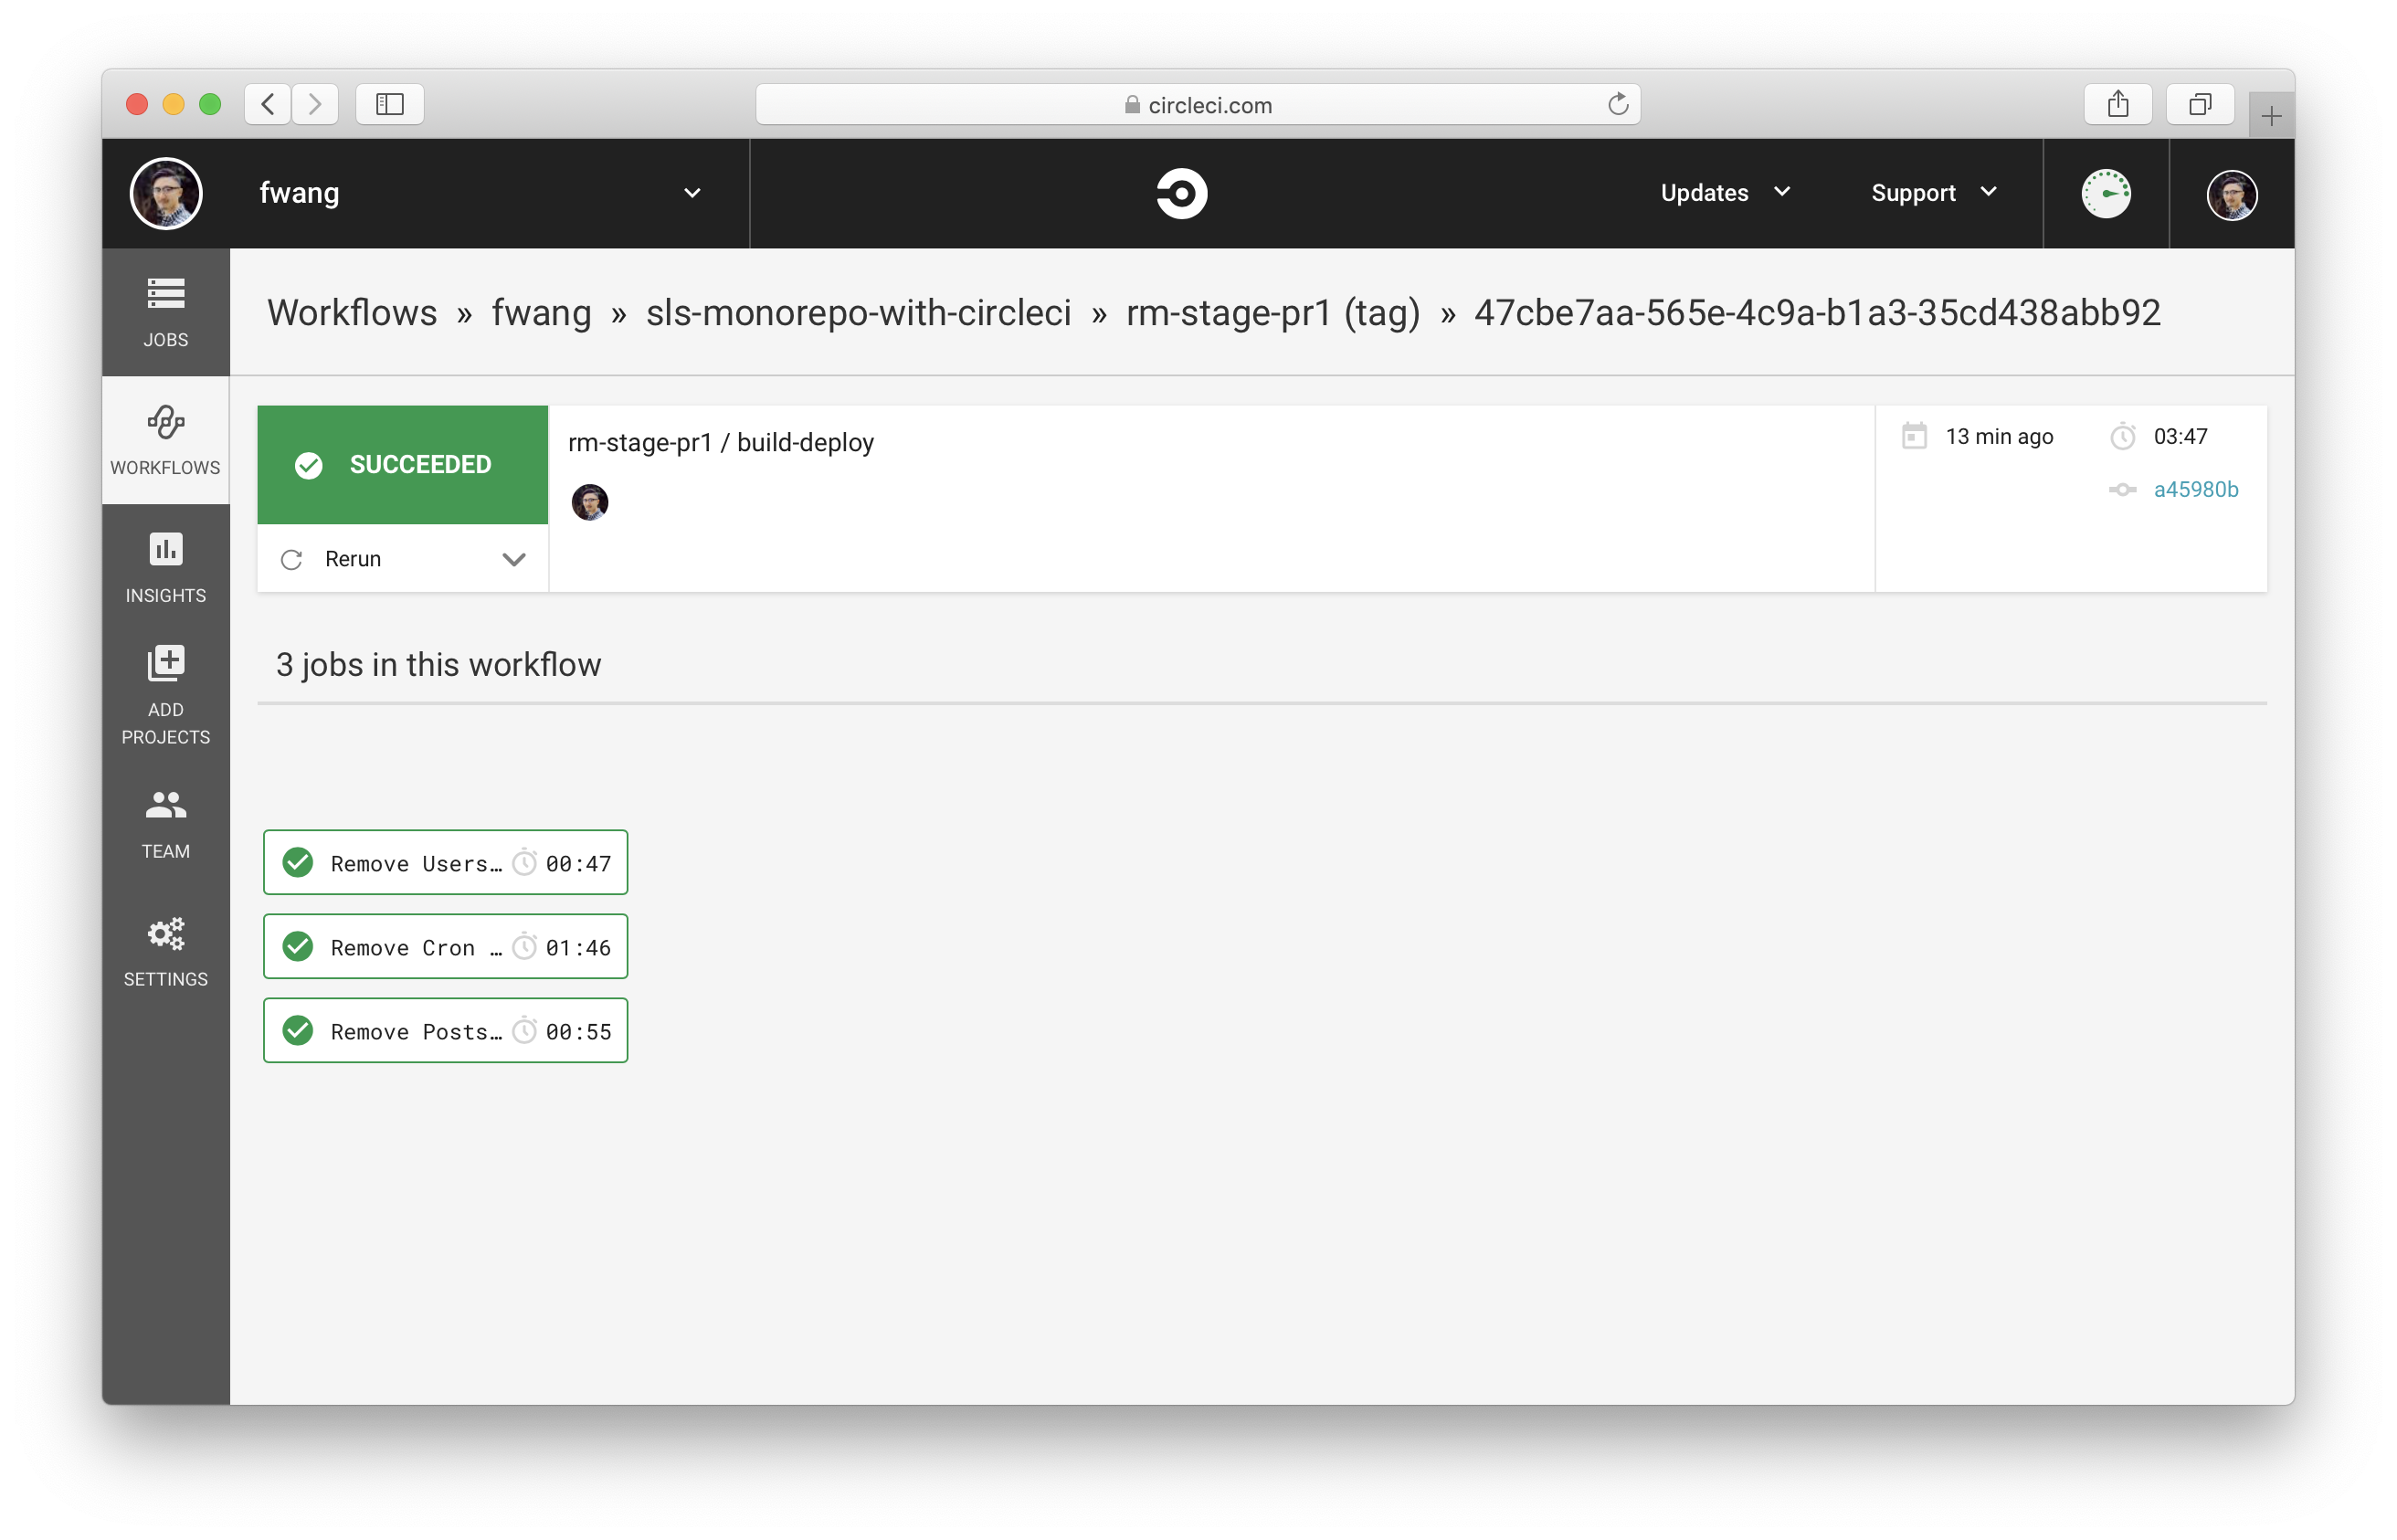 View remove services Workflow in CircleCI